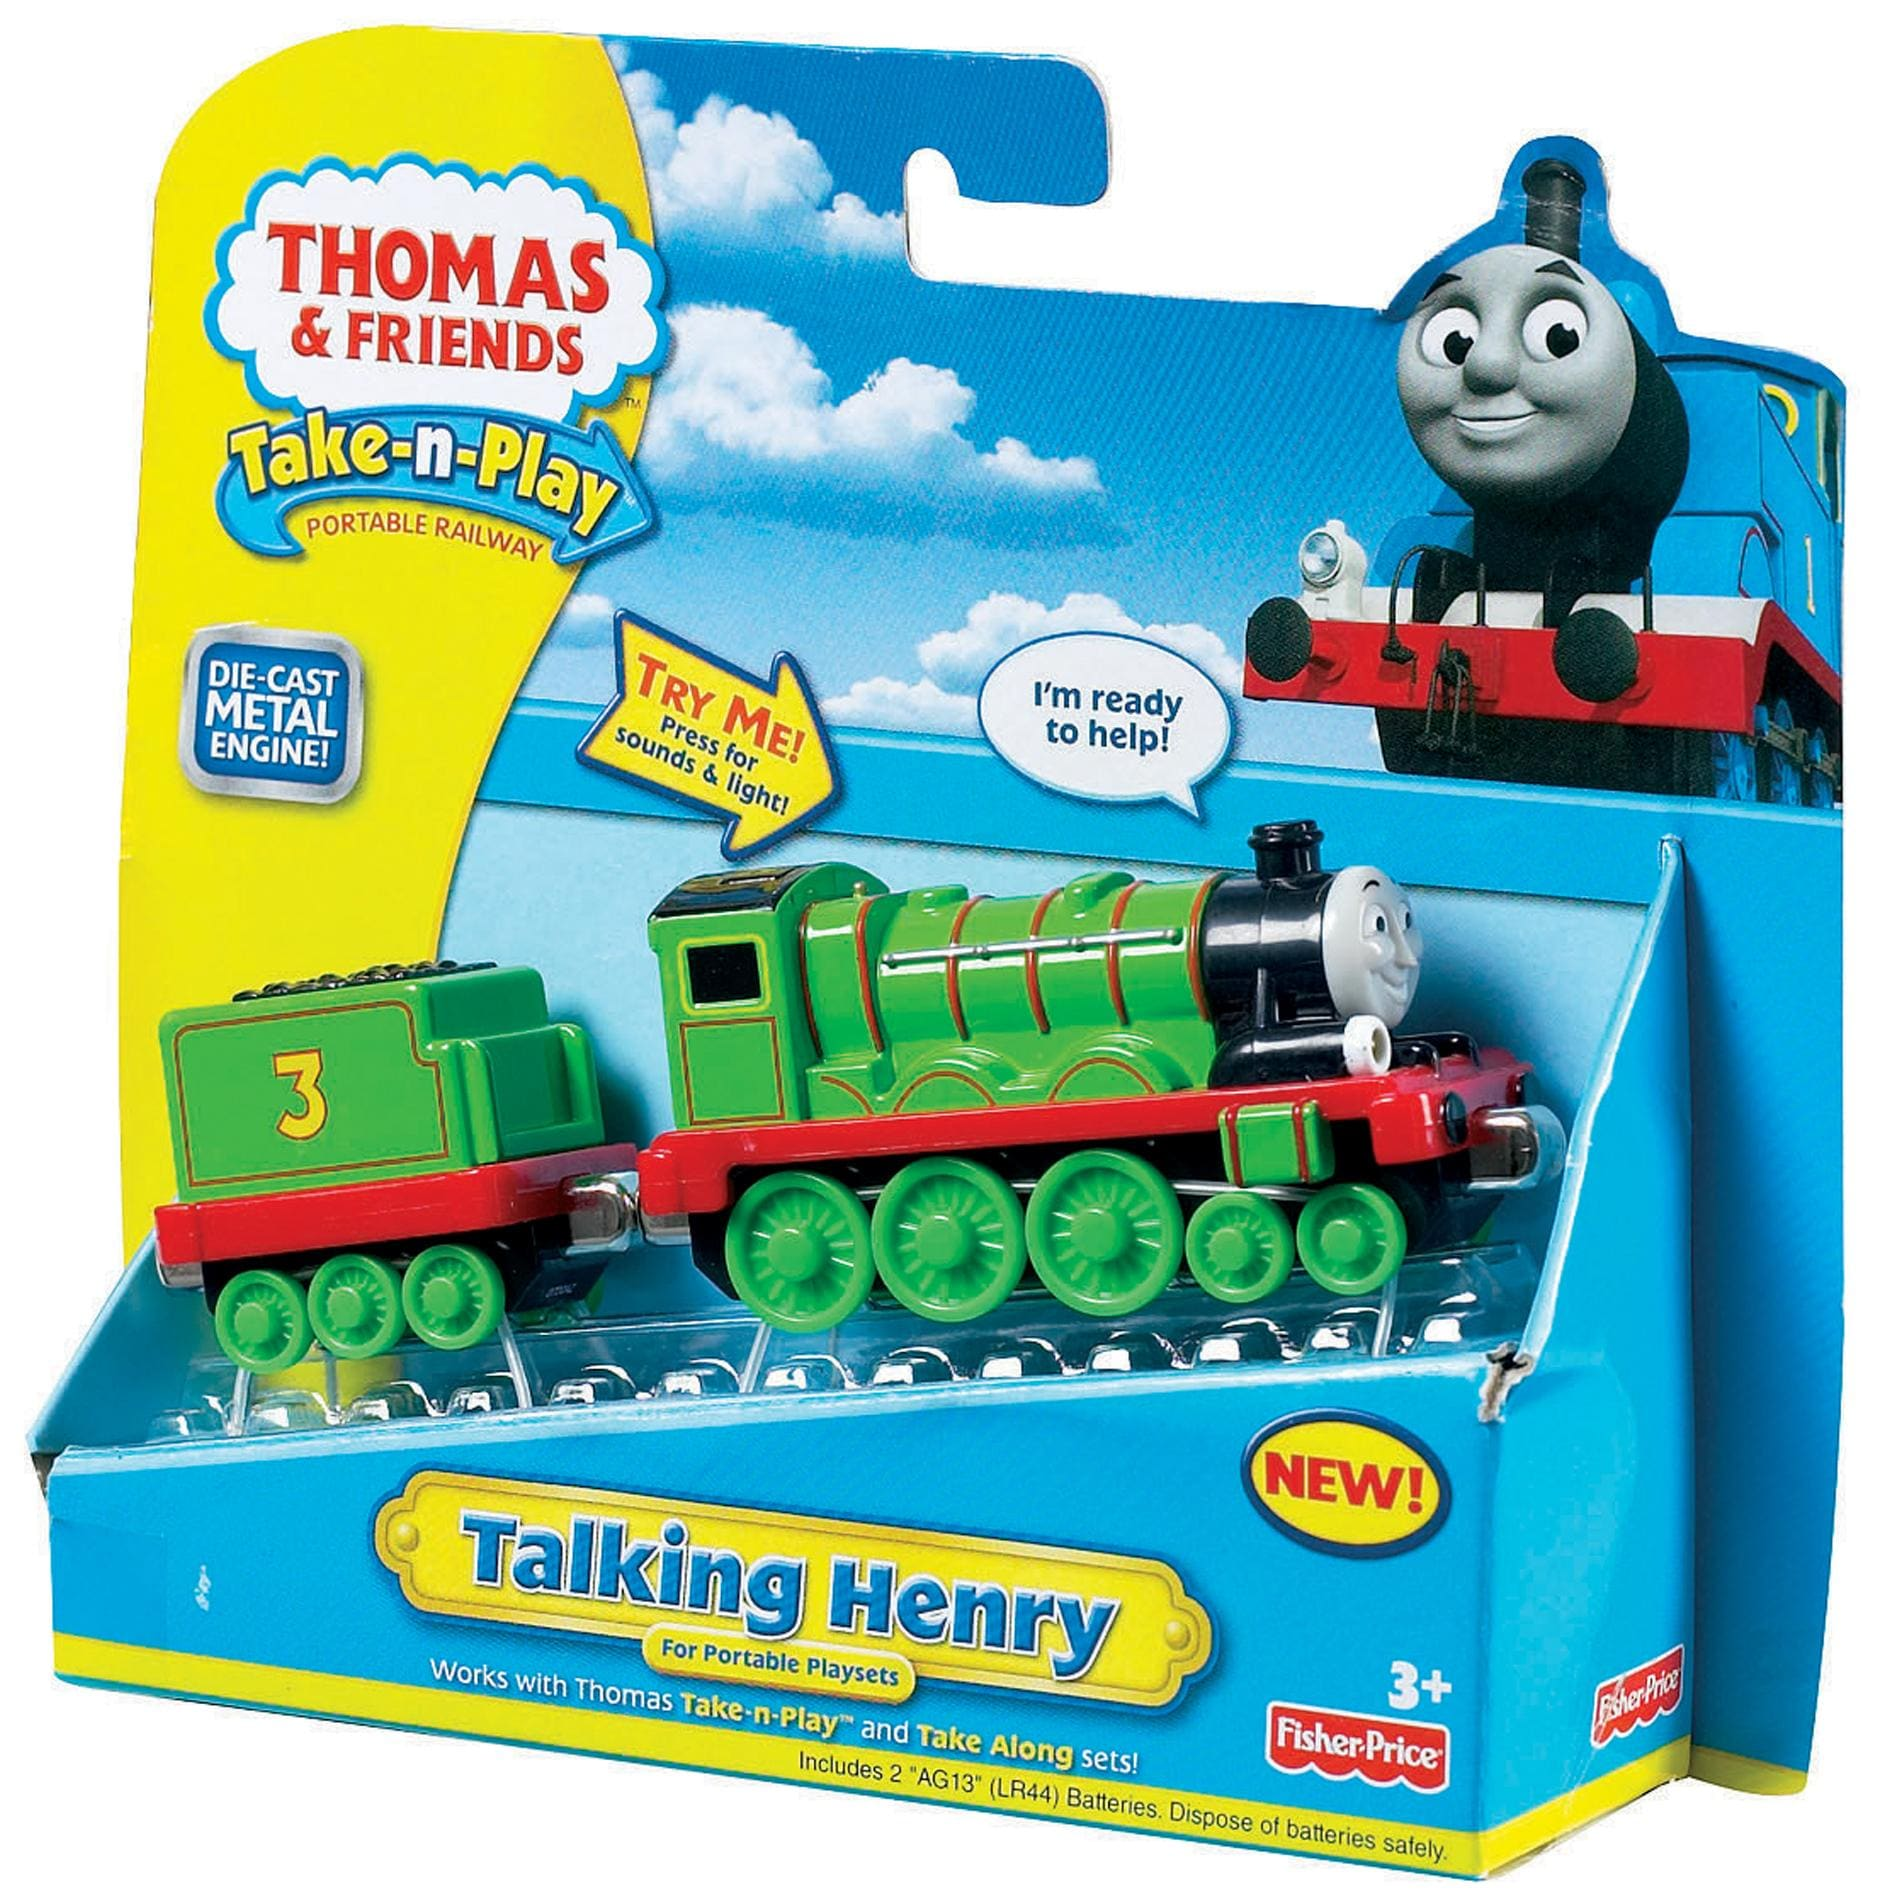 Kidkraft Super Highway Train Set And Table Fisher Price Thomas and Friends Large 'Talking Henry' Toy Train Engine ...